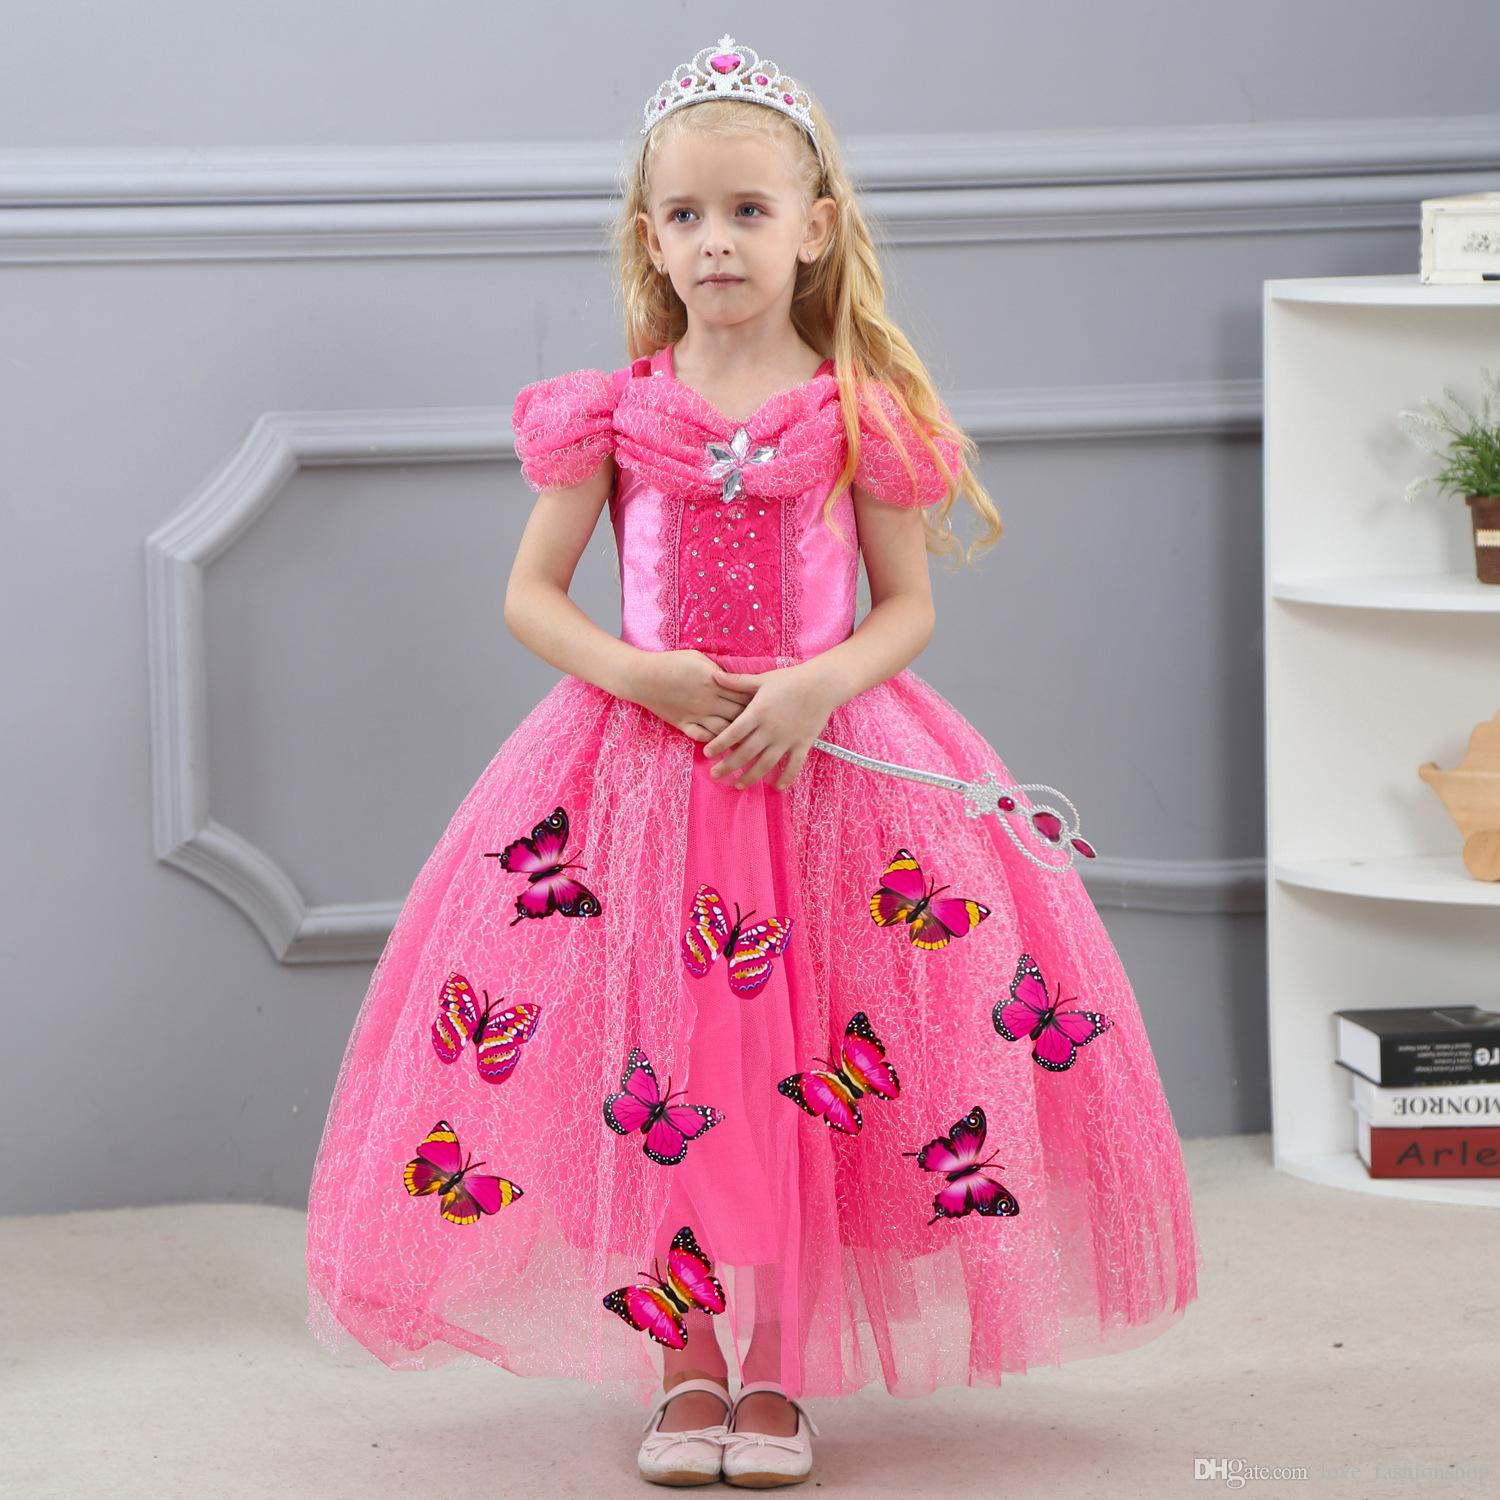 458779e1 2019 2019 Girls Cinderella Gowns Dress Blue Butterflies Kids Easter  Halloween Diamond Cosplay Costumes Clothing Party Formal Dress From  Love_fashionshop, ...